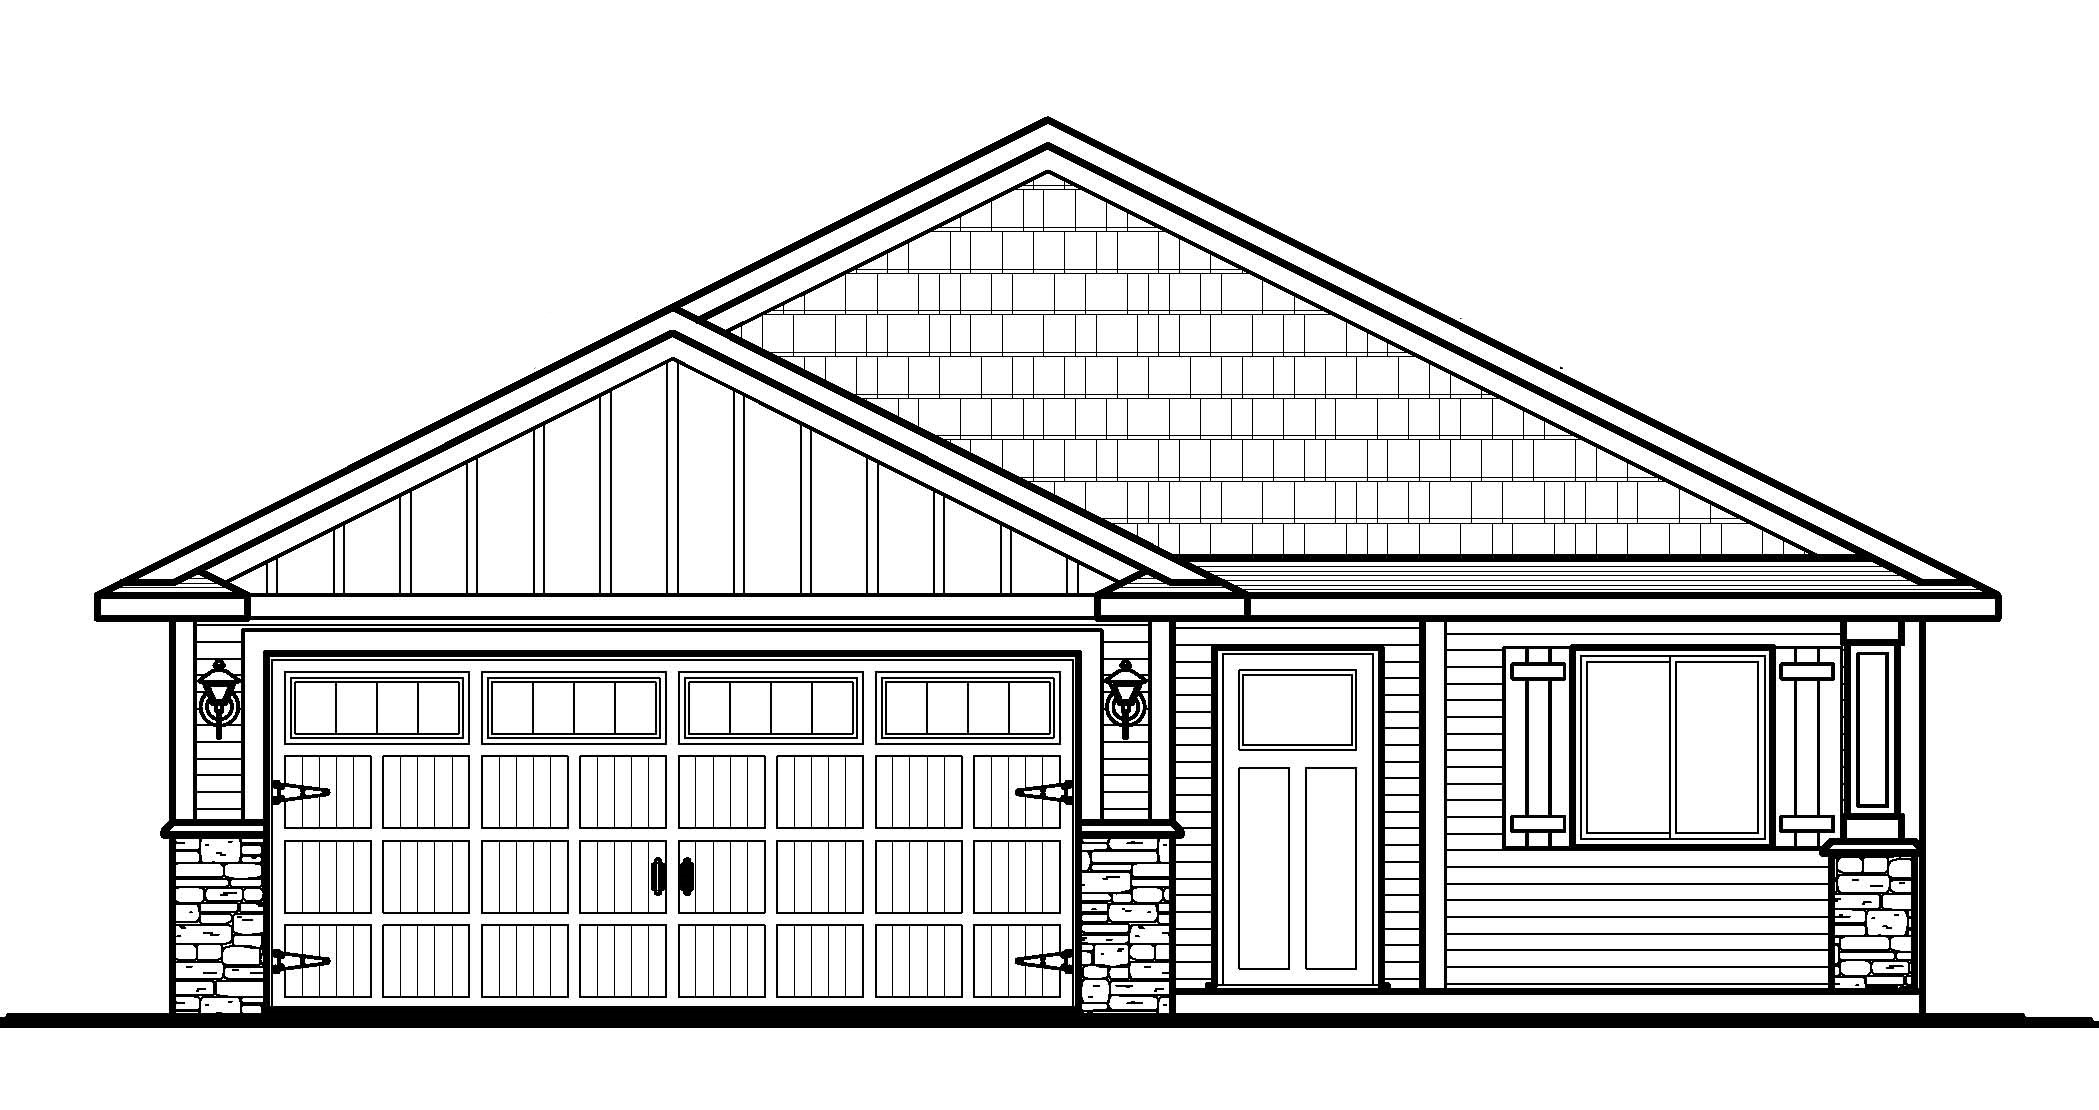 31676 McGuire TrailLindstrom, MN - The Bellaire3BR/2BA-1744 FSFOne Story Detached TownhomeAvailable for Purchase